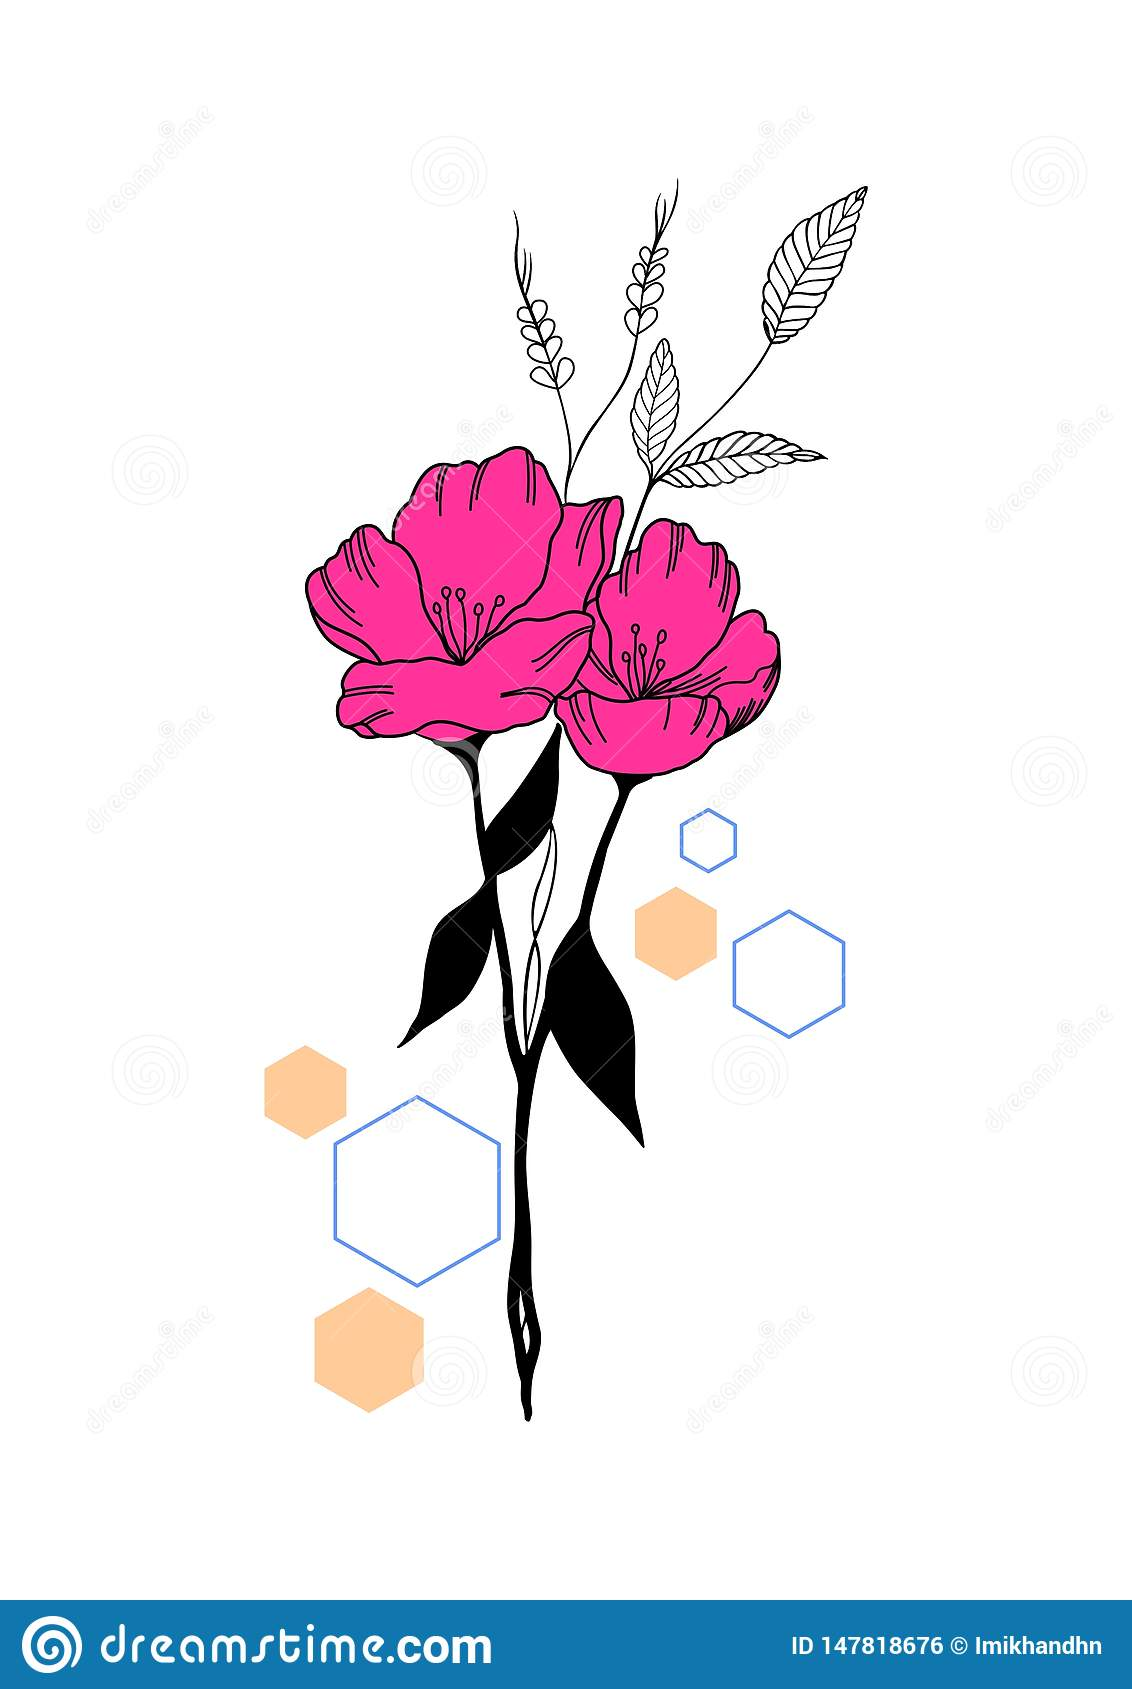 Flower with some hexagon shape